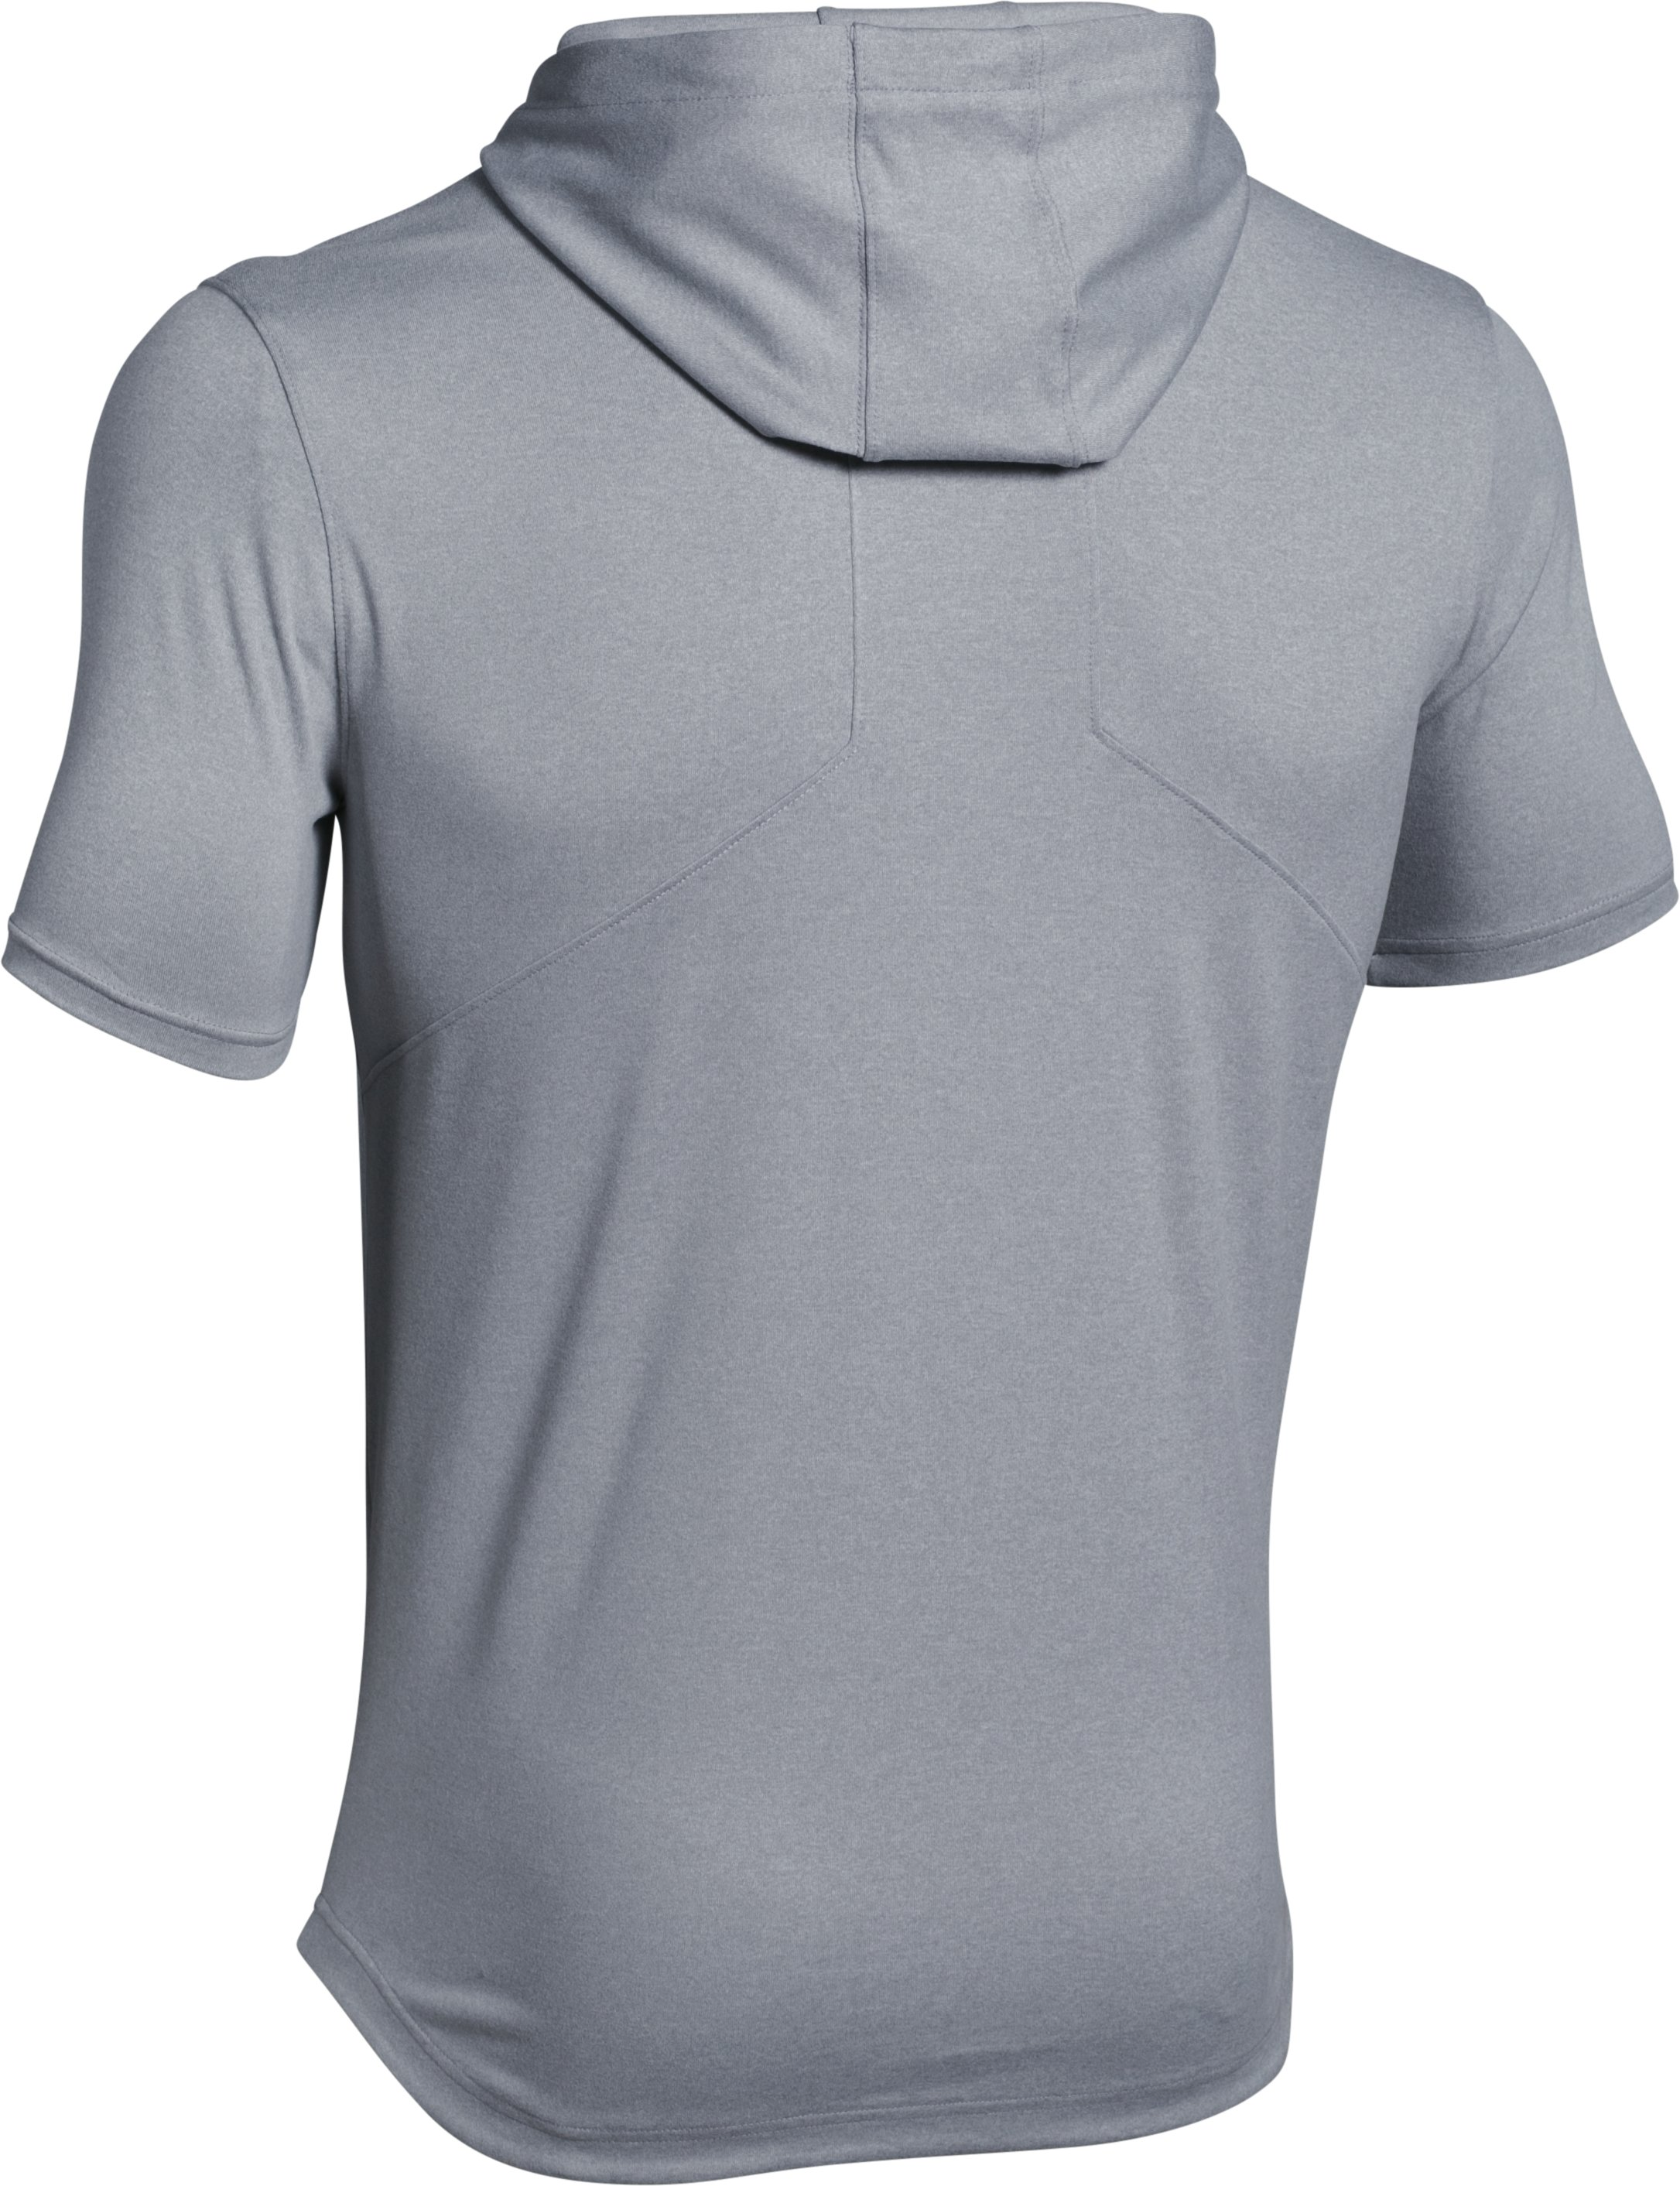 Men's SC30 Off-Court Hoodie, True Gray Heather, undefined